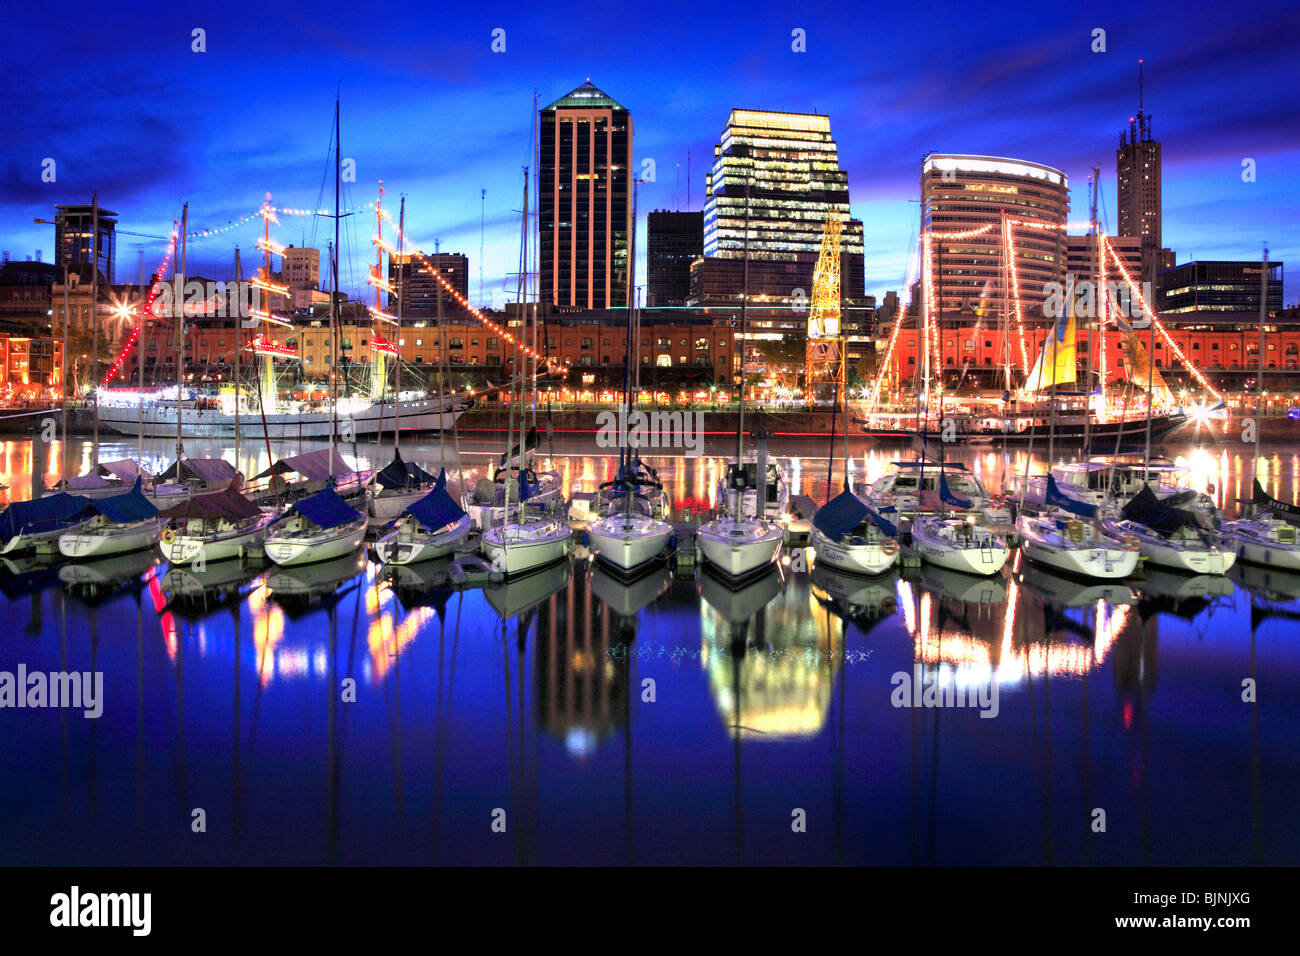 Close Front view of Puerto Madero yacht  club view at dusk with water reflections and lights, Buenos Aires, Argentina - Stock Image